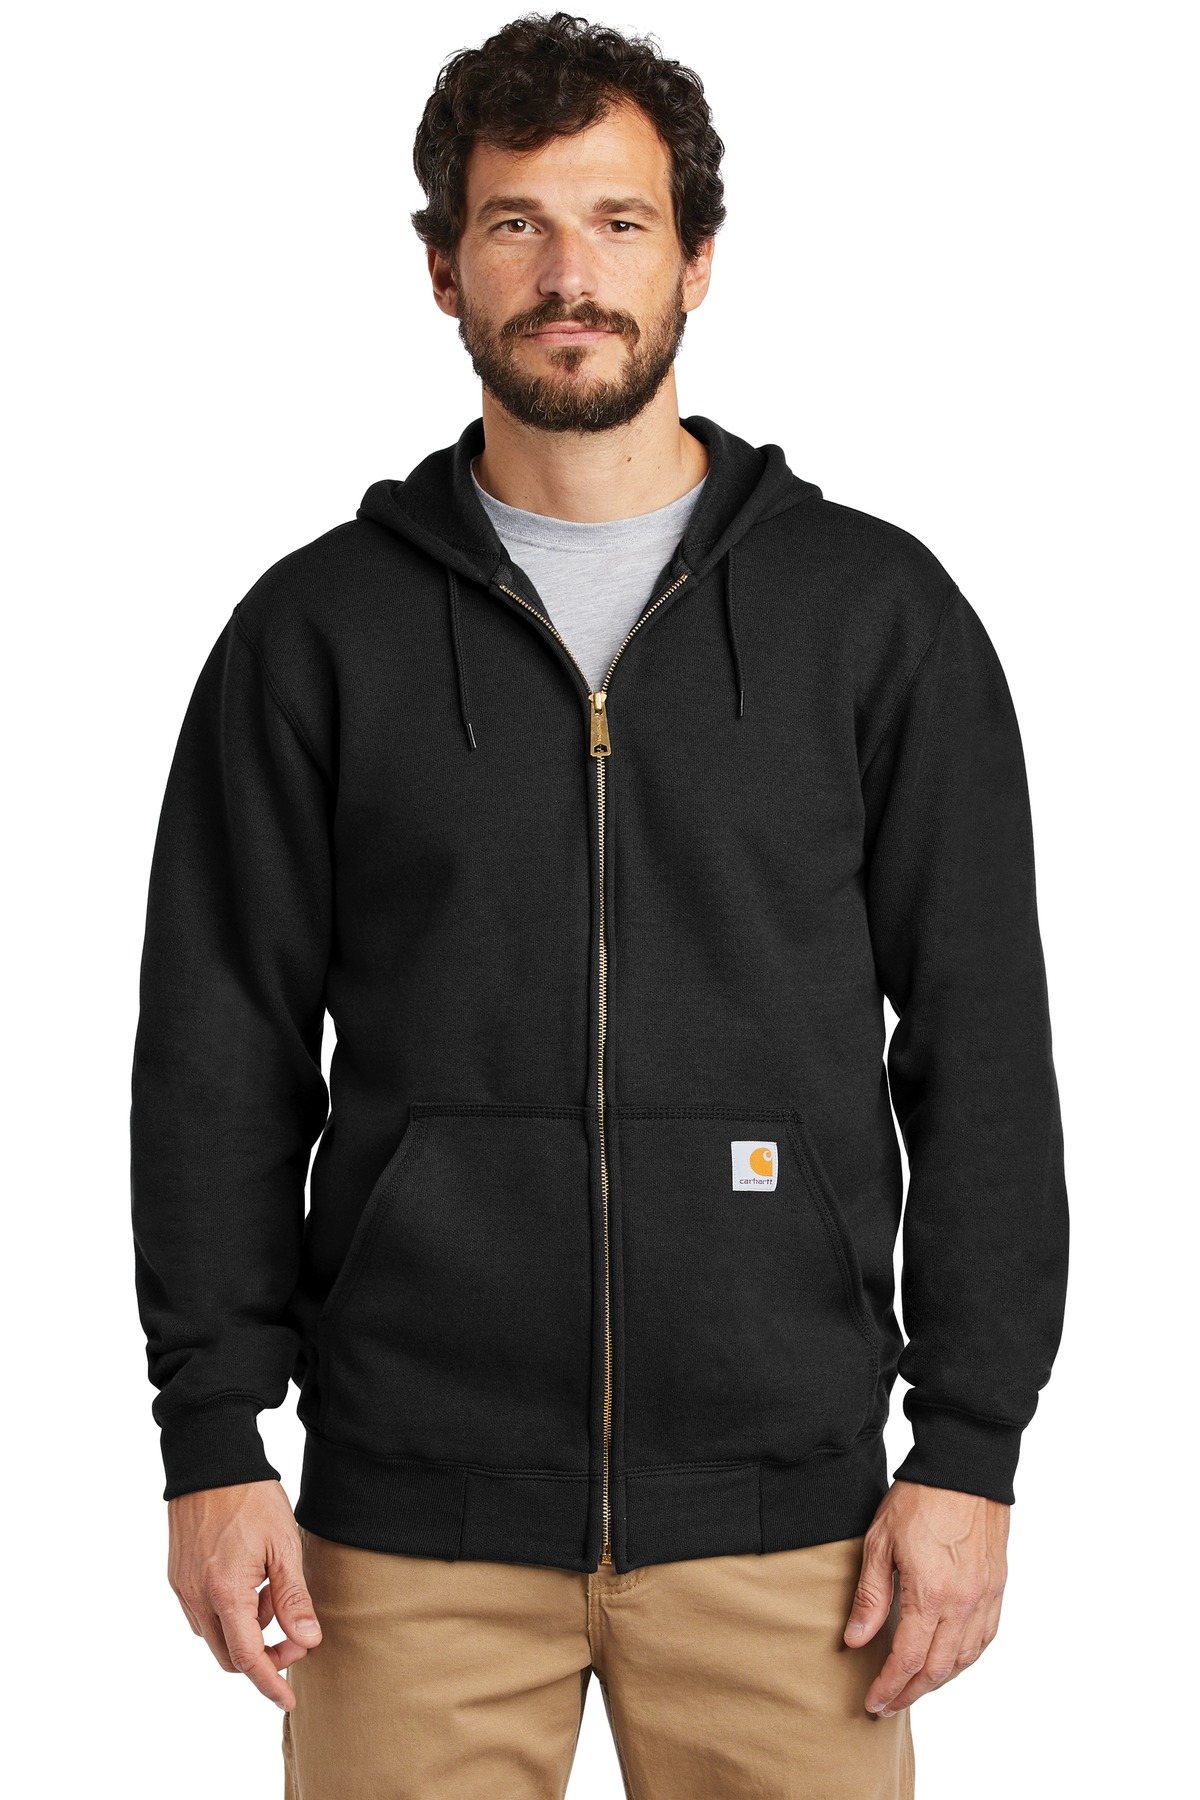 Carhartt  ®  Midweight Hooded Zip-Front Sweatshirt. CTK122 - Black